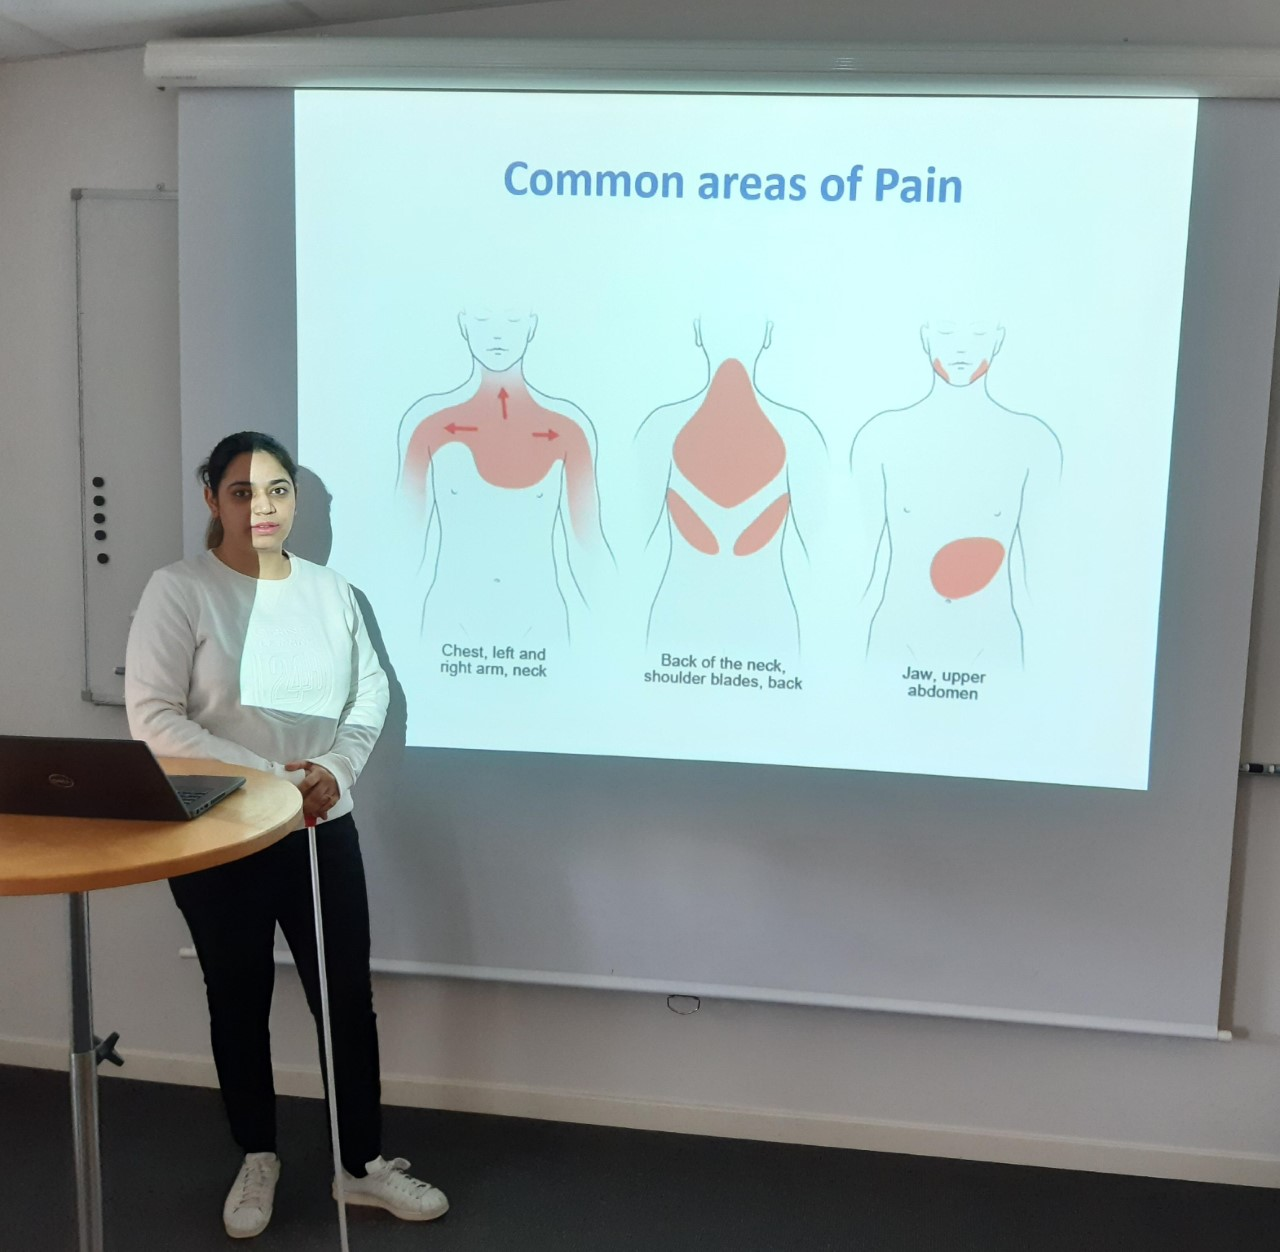 Common areas of Pain